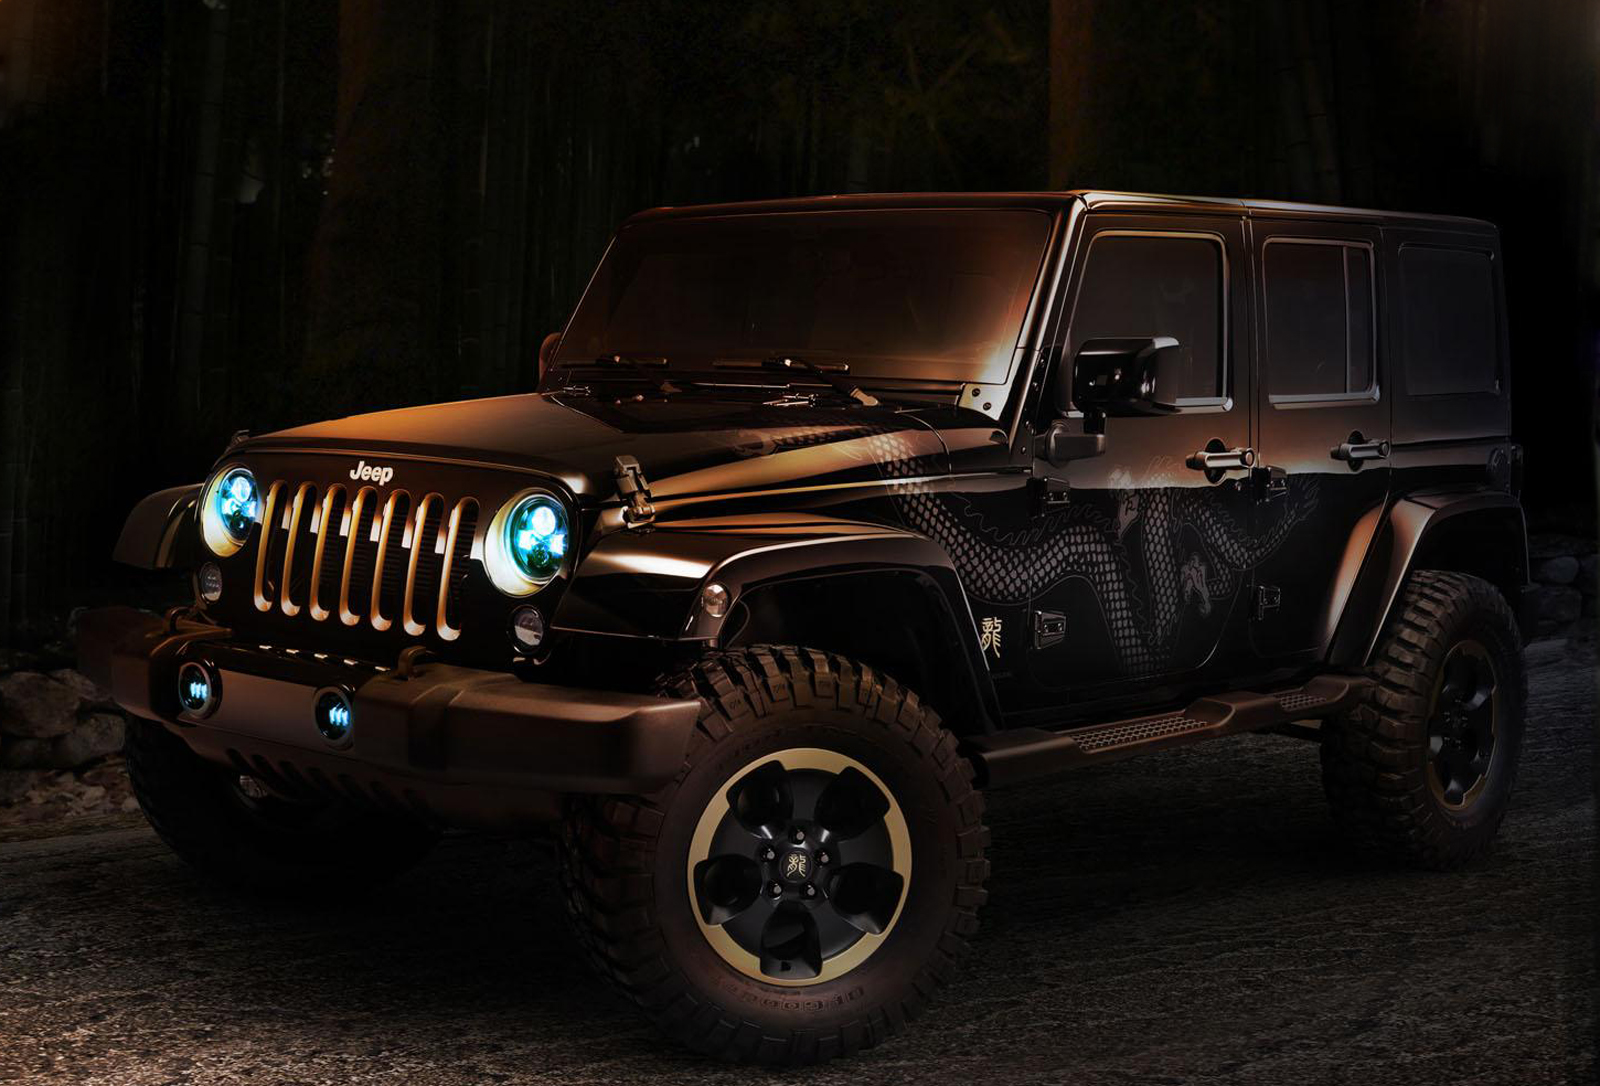 2012 Jeep Wrangler Dragon Concept 2 2012 Chrysler 300 Ruyi Concepts and Jeep Wrangler Dragon Concepts revealed